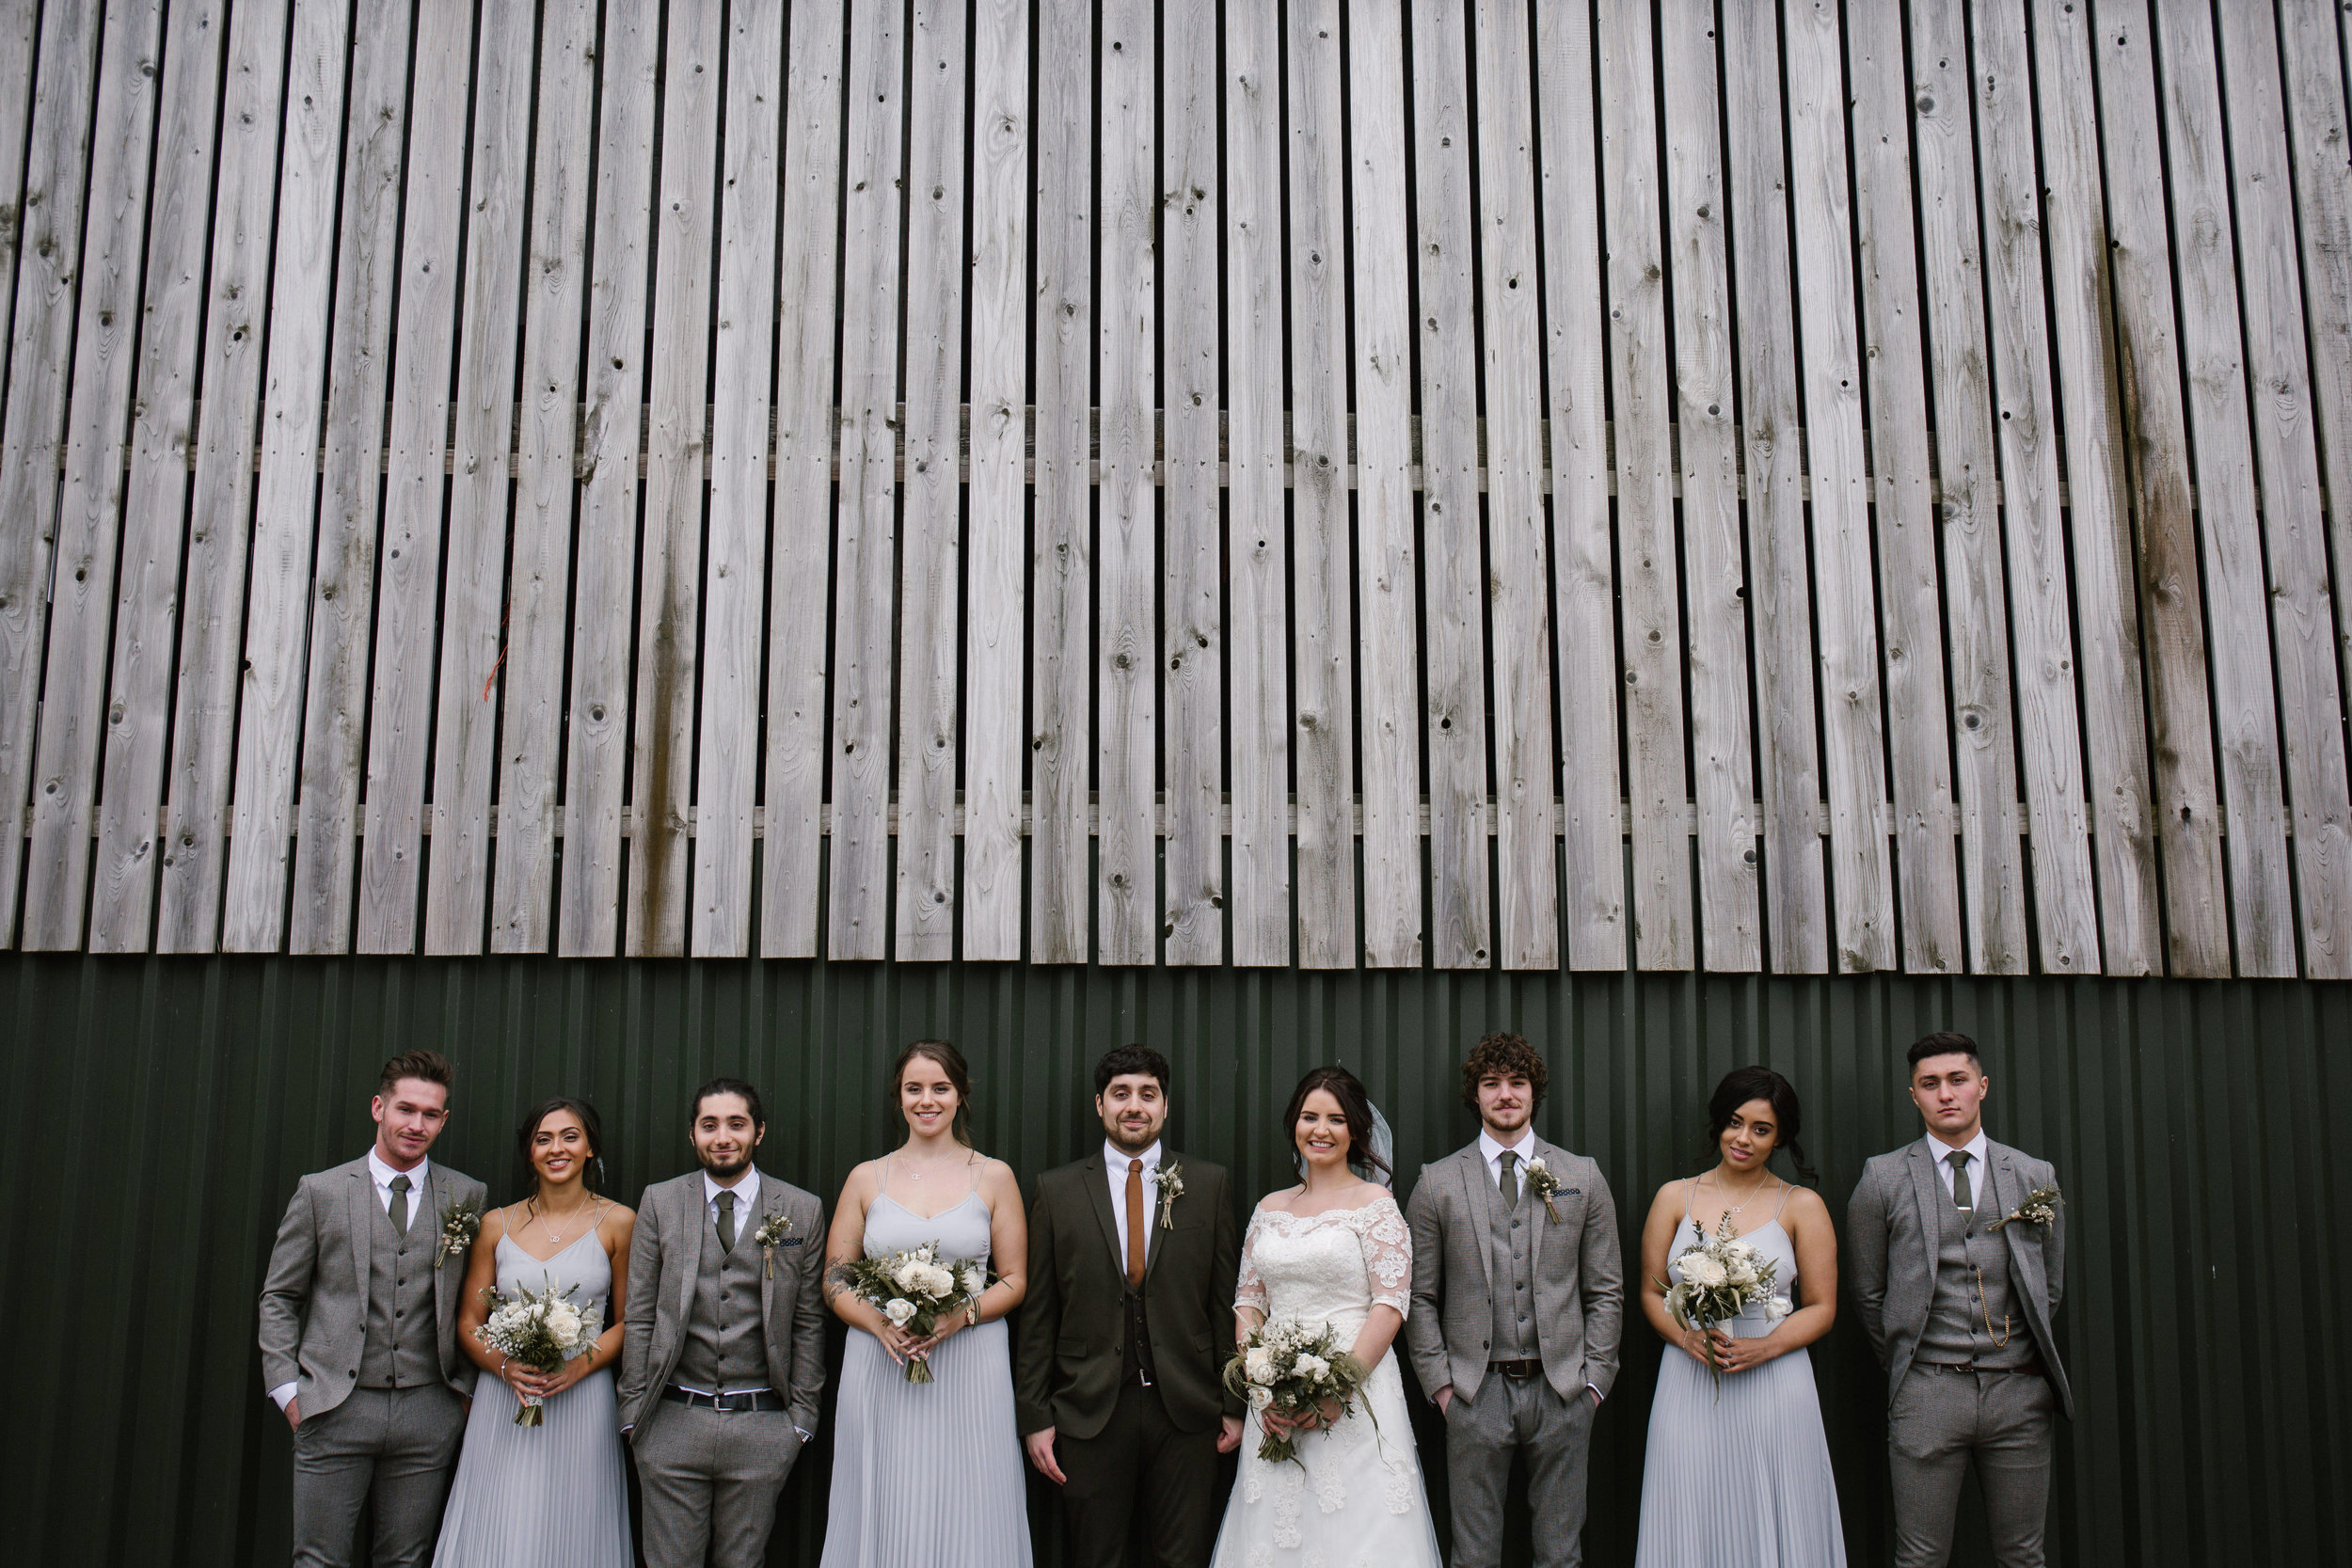 bridal party looking extra cool standing in front of a barn wall at sandhole oak barn in cheshire